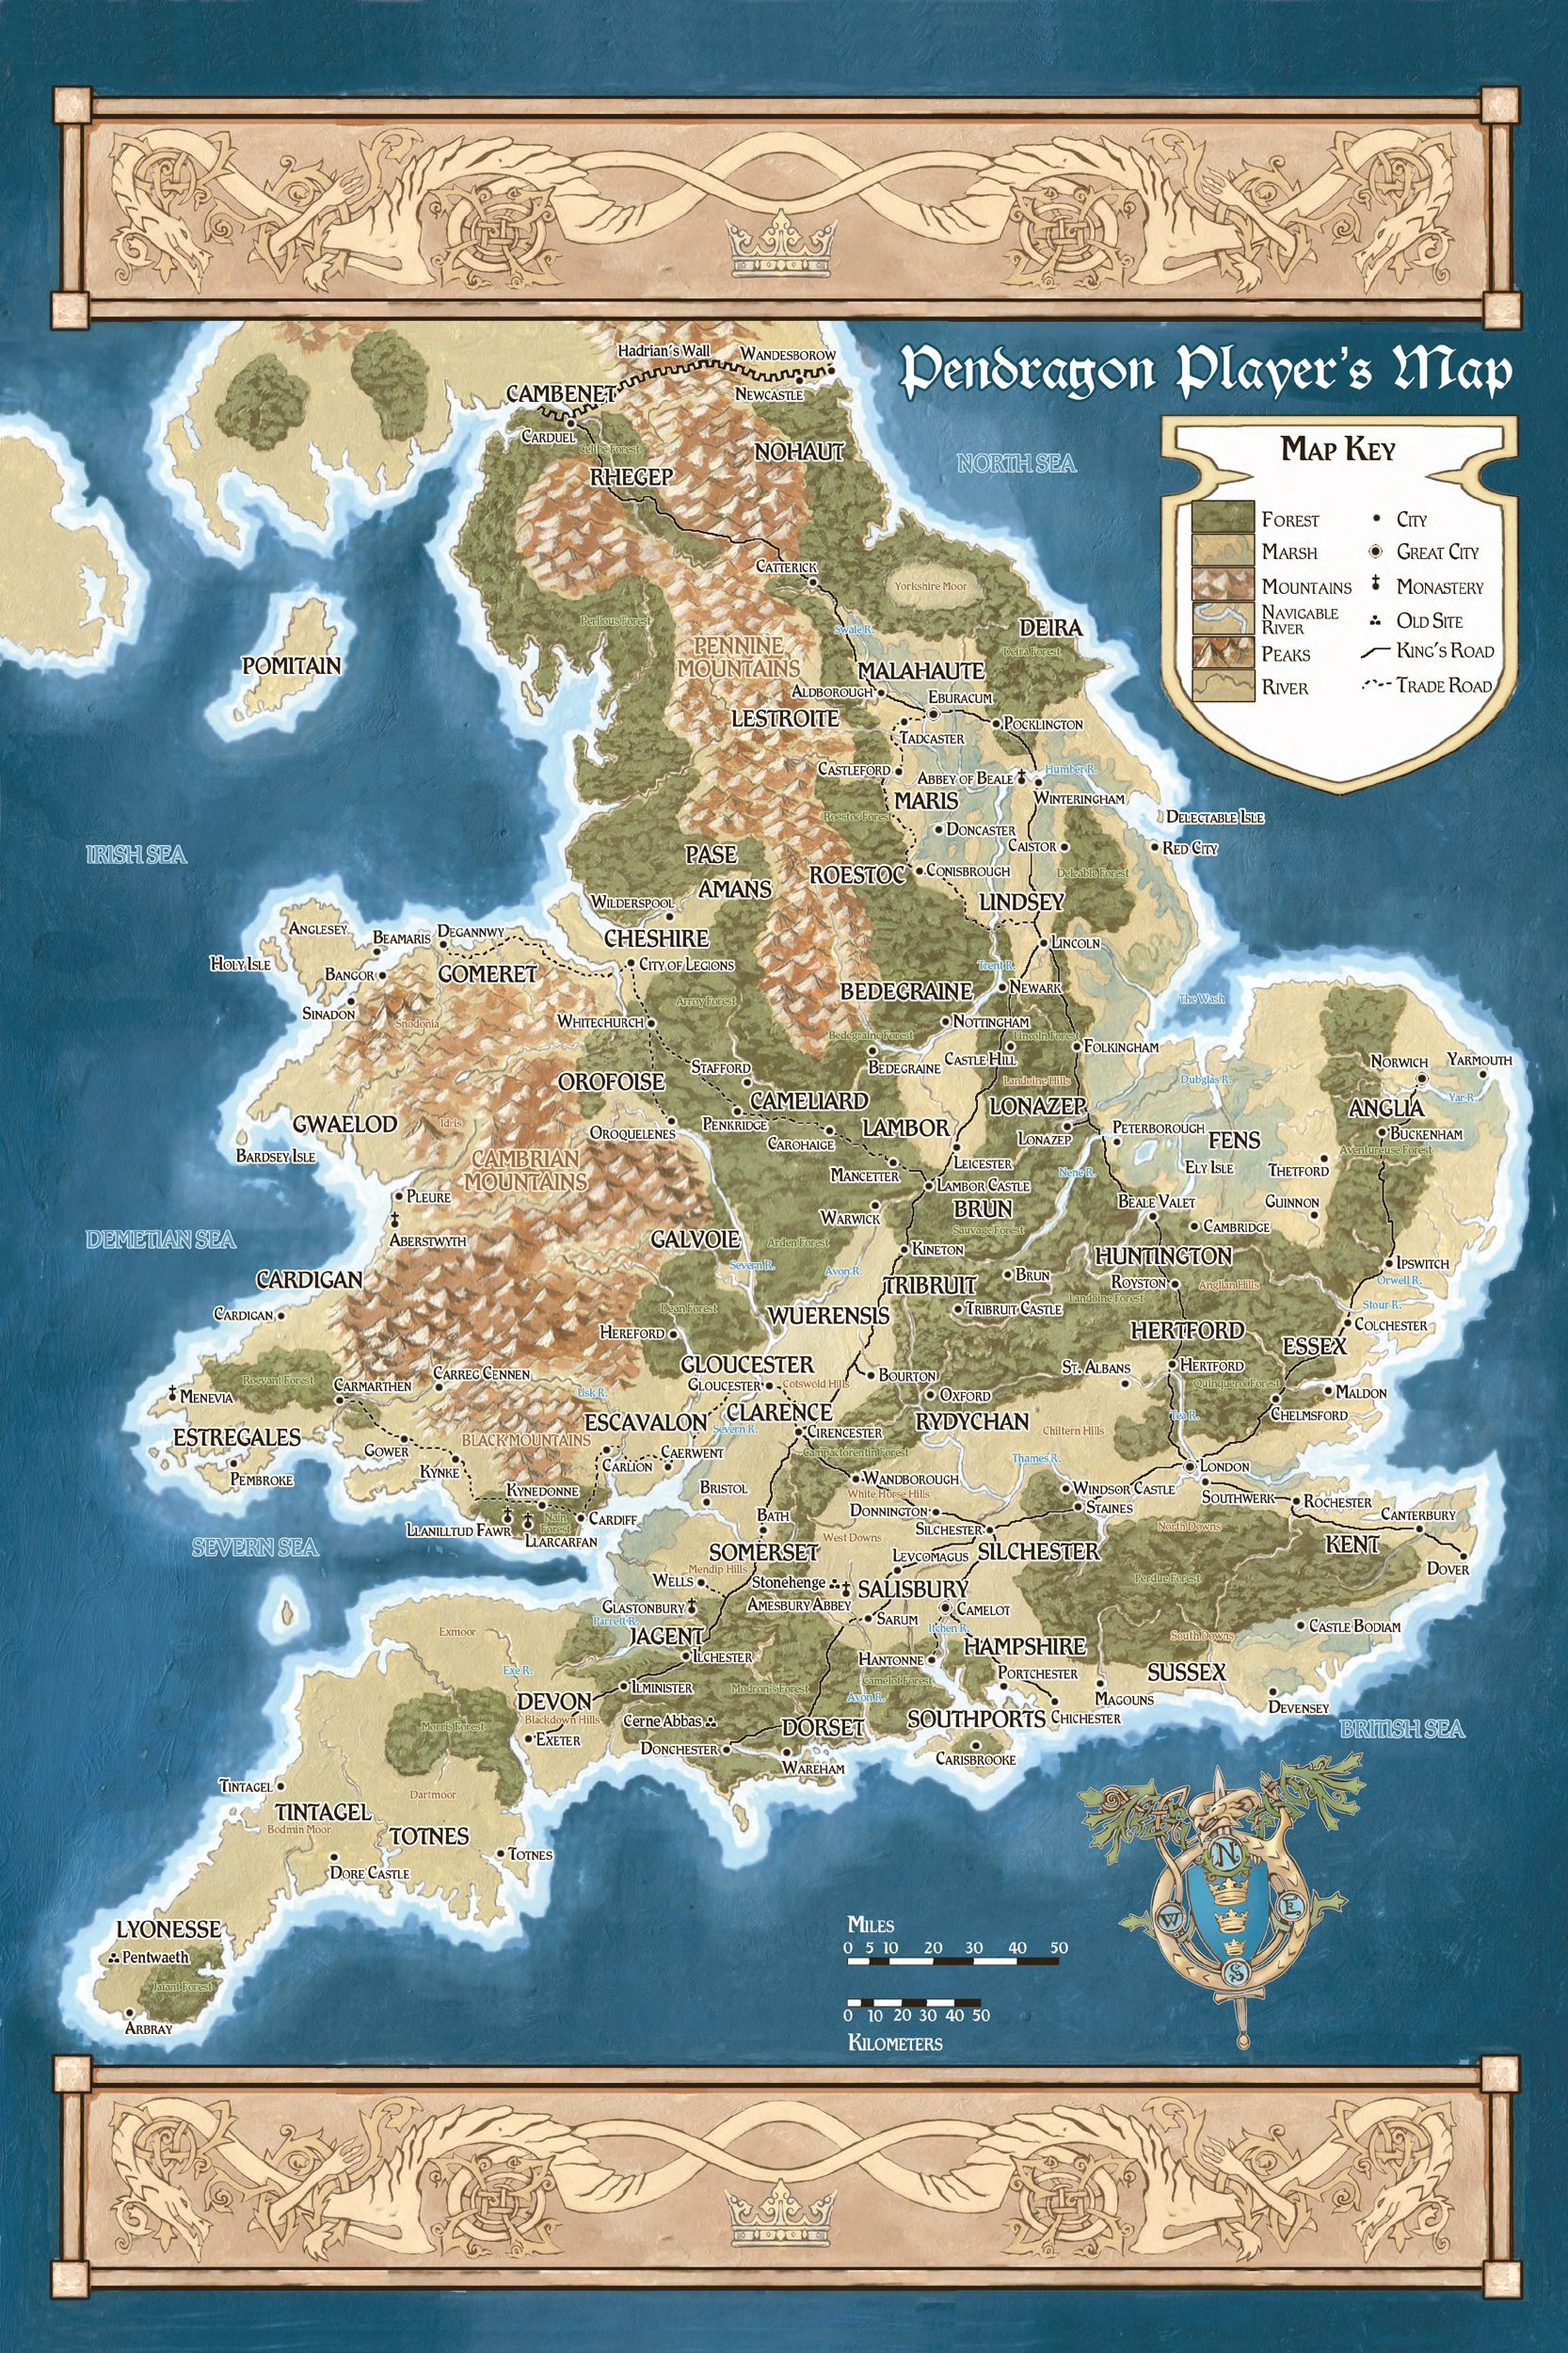 King Arthur Pendragon: Notes, Maps and Links for your Pendragon Game on counties in england, norwich england, hull england, newcastle england, reading england, northumberland england, cumbria england, norfolk england, world map england, wessex england, sunderland england, lincolnshire england, blackpool england, cornwall england, leeds england, broadchurch england, hastings england, castles in england, wiltshire england, surrey england,